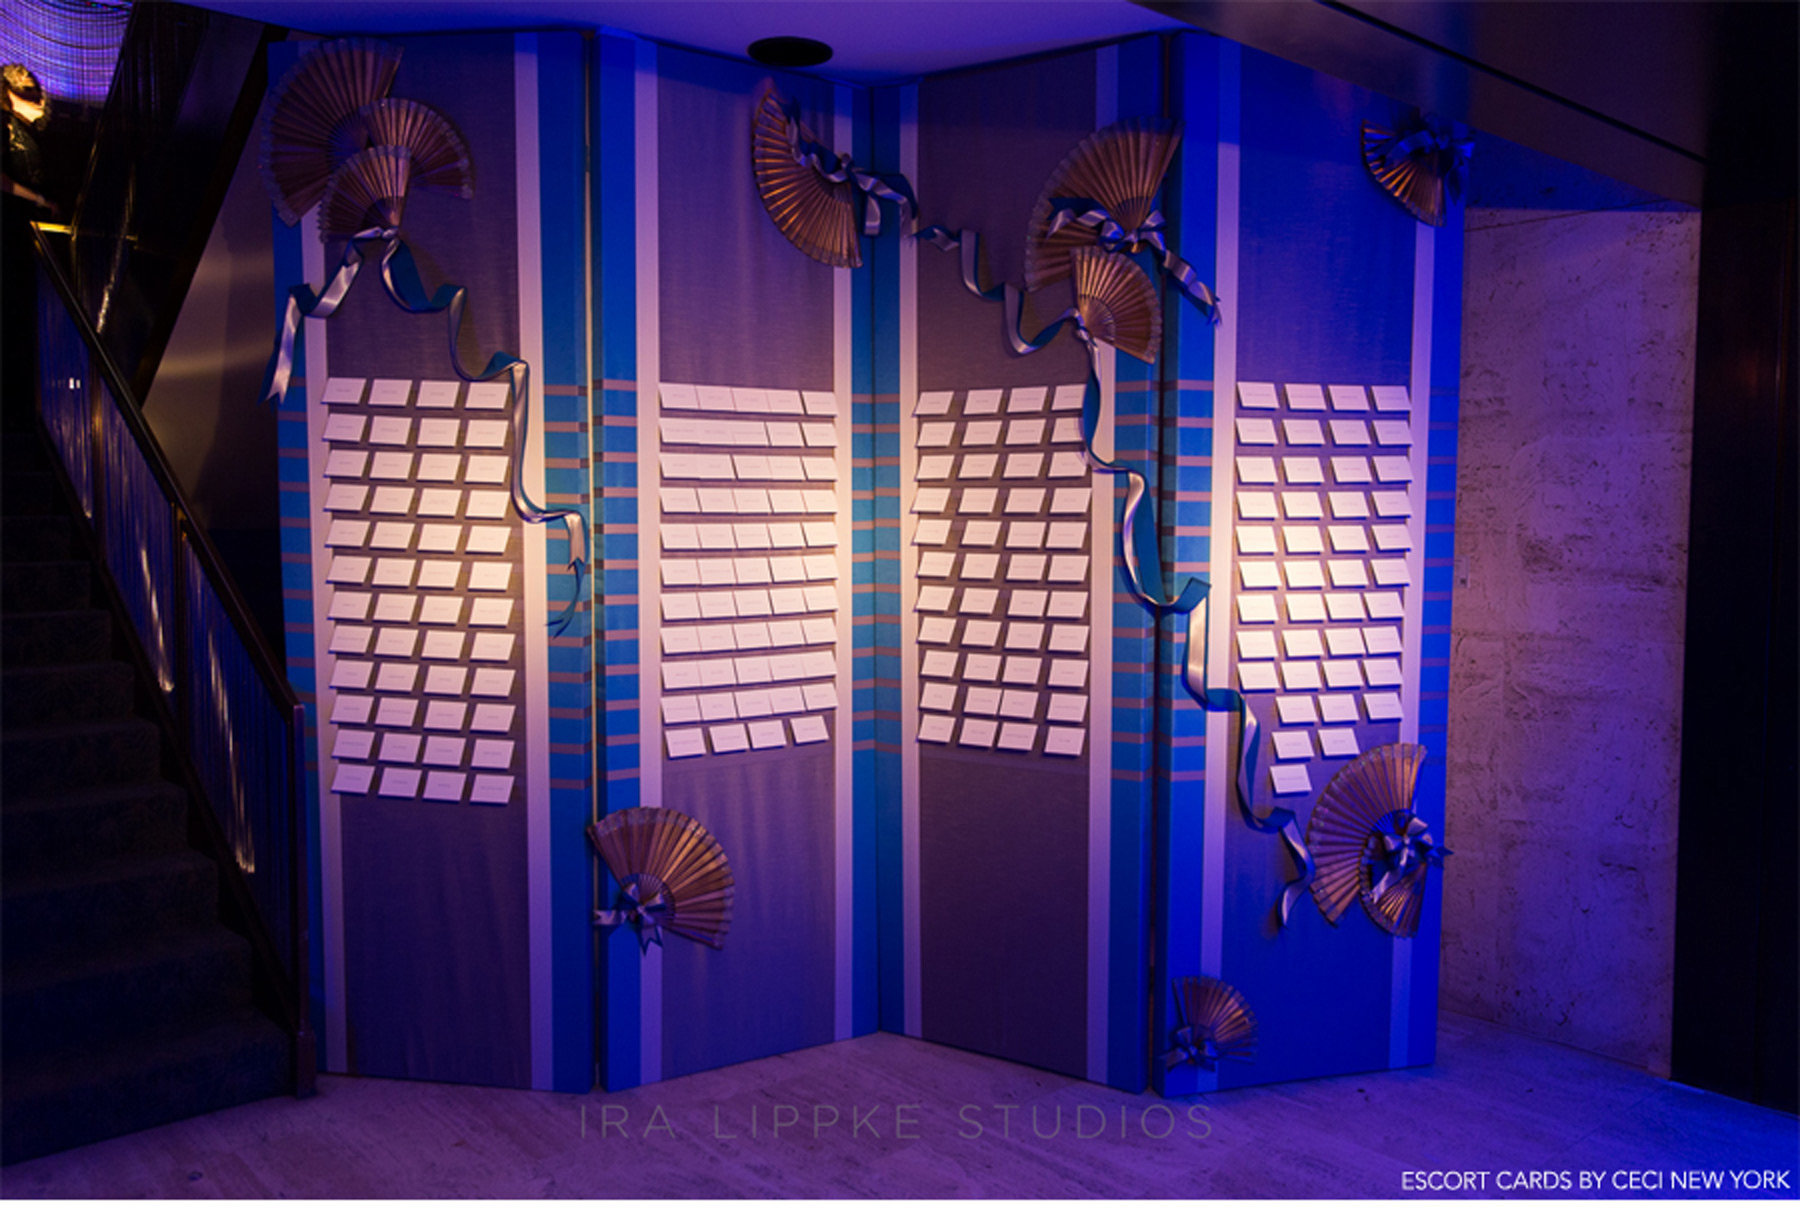 Our Muse - Blue Deco Bat Mitzvah - Be inspired by Samantha's blue, Deco-themed bat mitzvah at the Four Seasons Restaurant - deco, blue, gold, bat mitzvah, custom, design, new york city, dress, getting ready, escort card, wall, ceci new york, skeeball, four seasons, manhattan